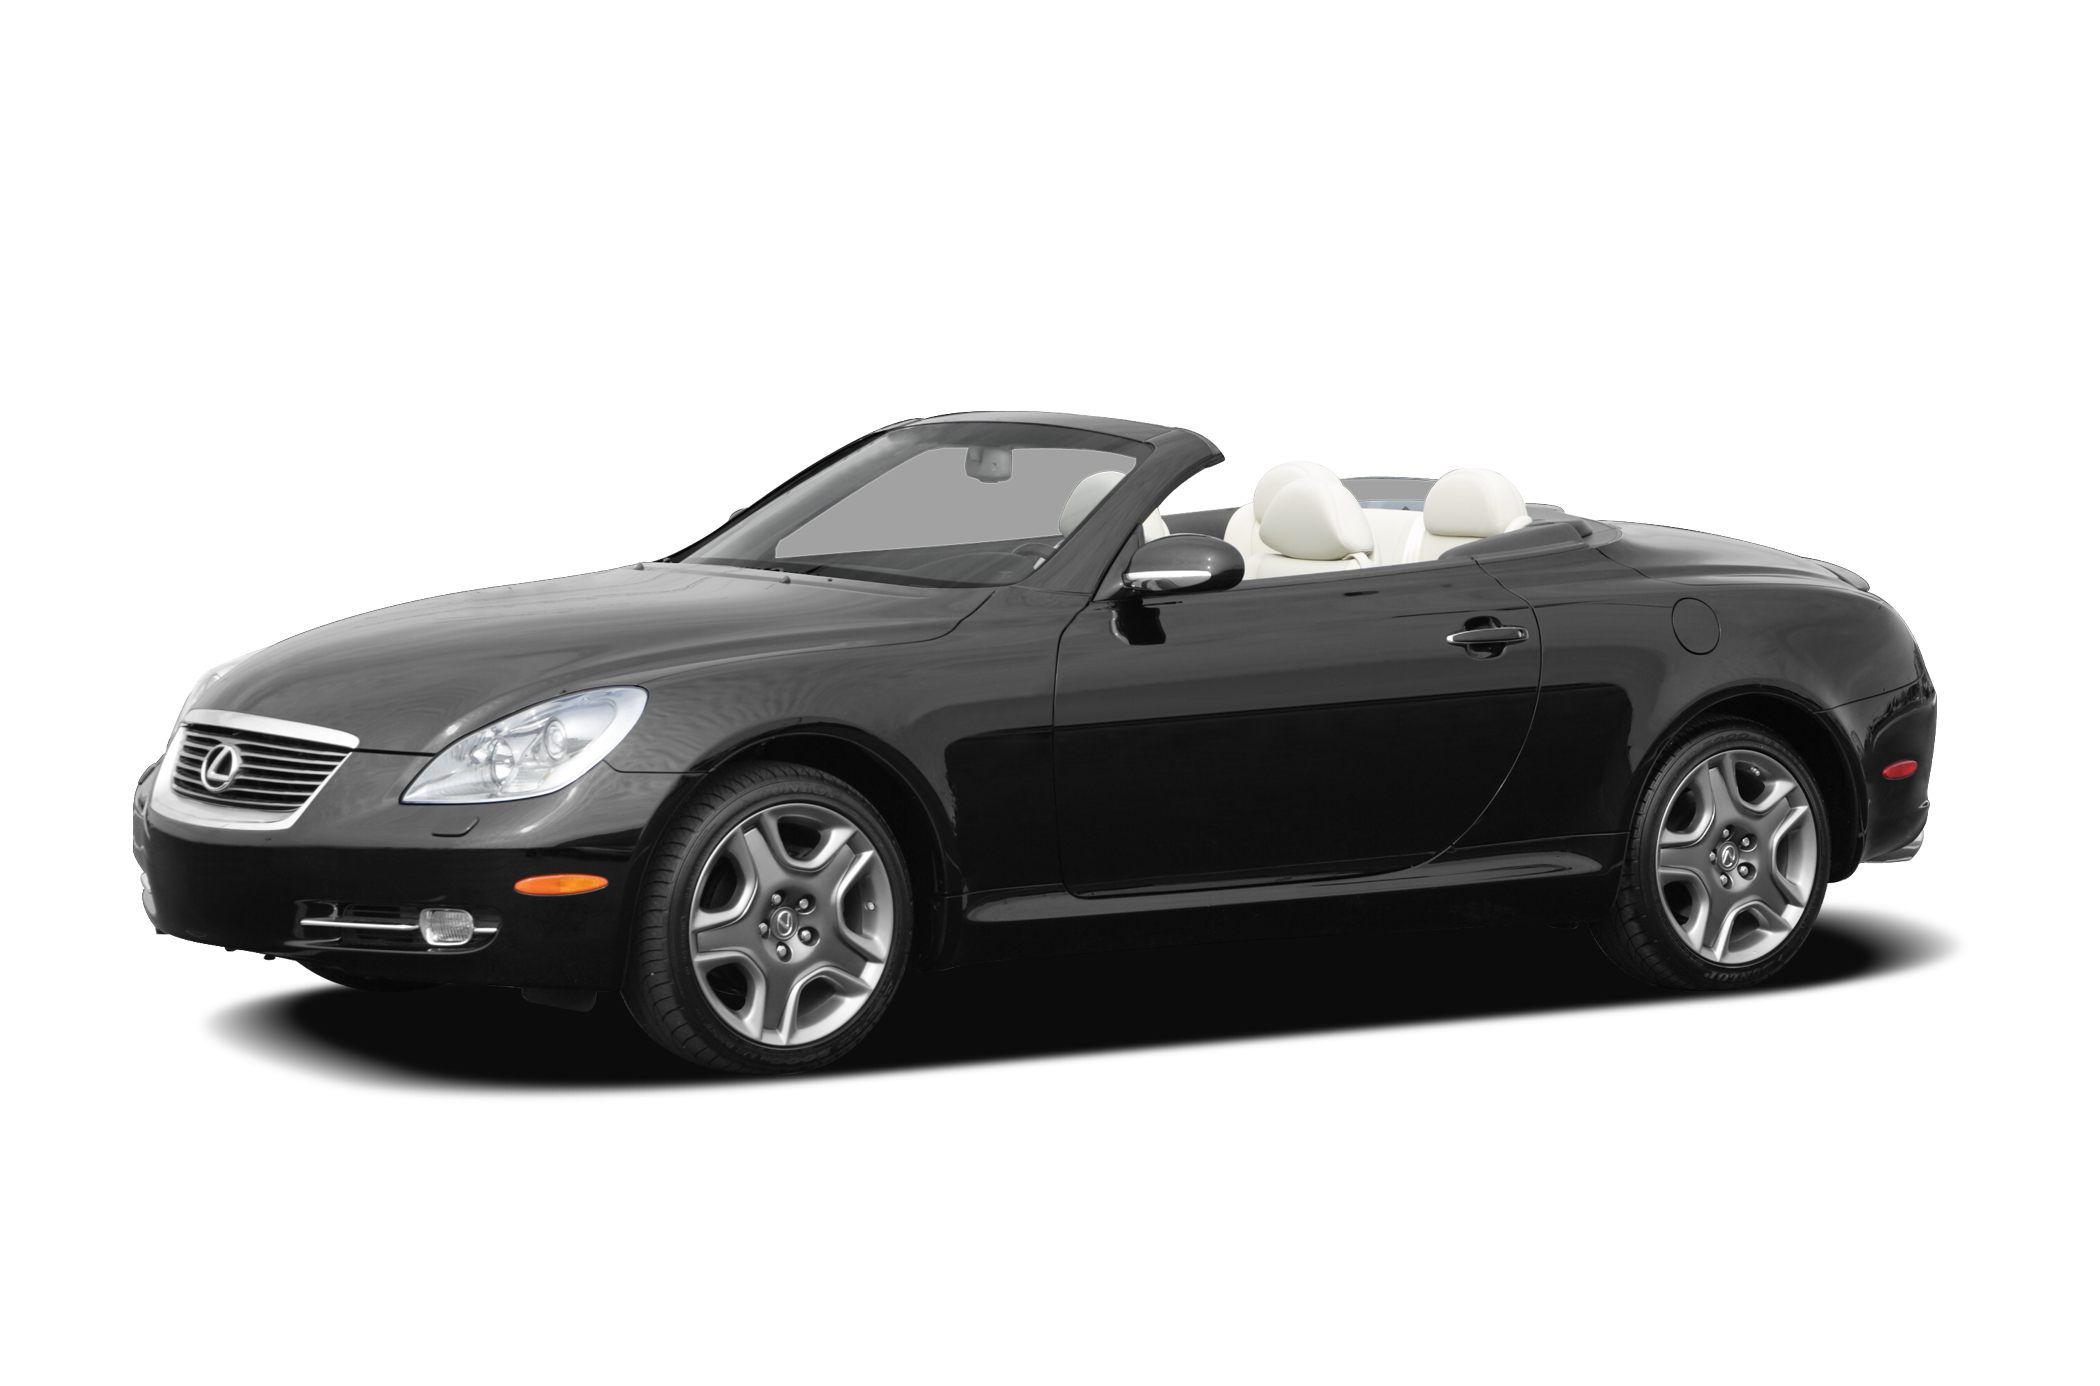 2007 Lexus SC 430 Base This Lexus is an amazing ride Sporty seats four and draws attention ever